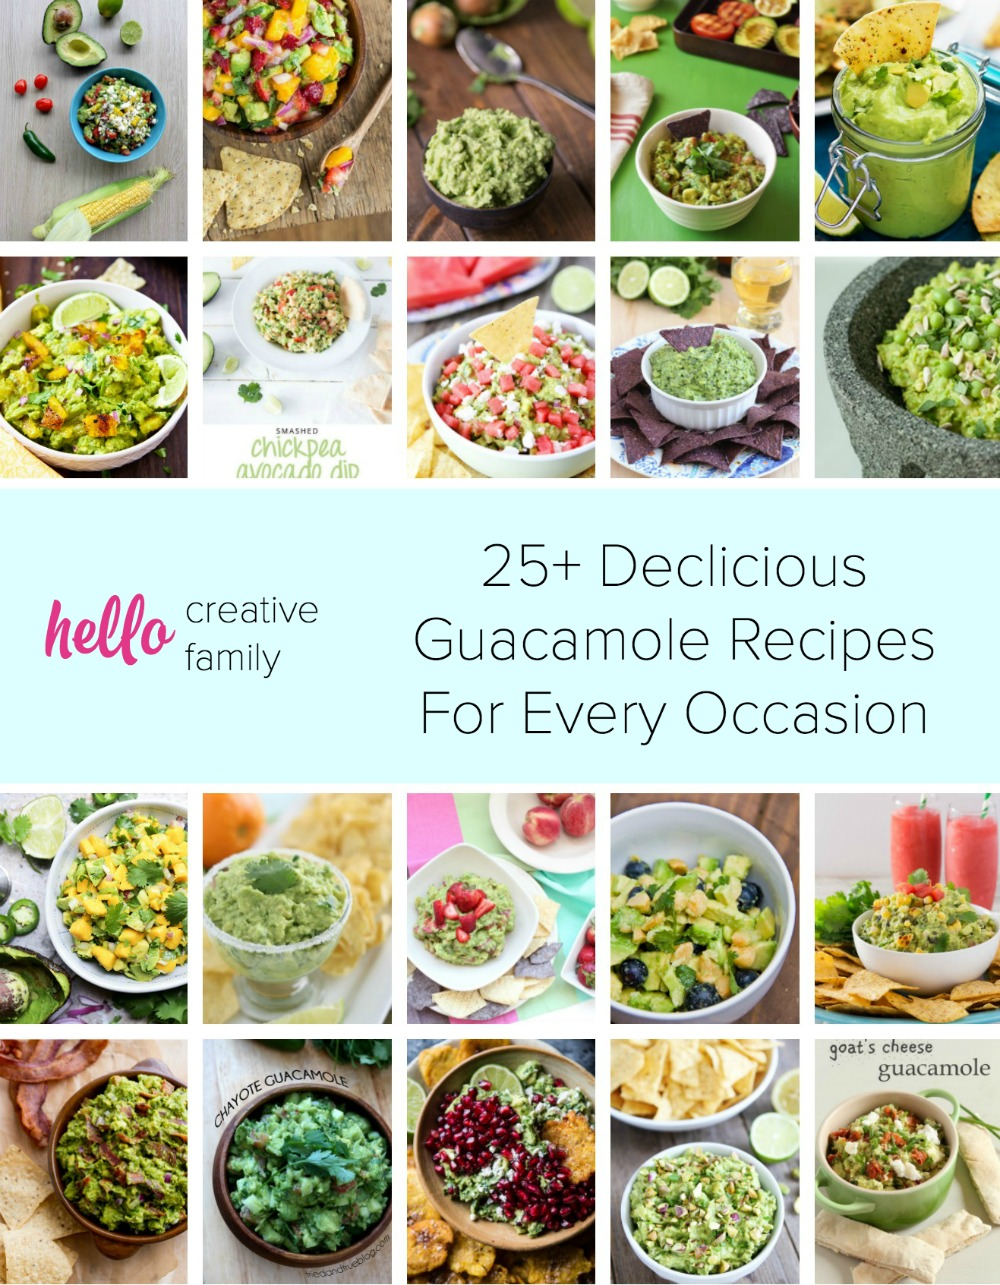 25 Delicious Guacamole Recipes for Every Occasion from Hello Creative Family